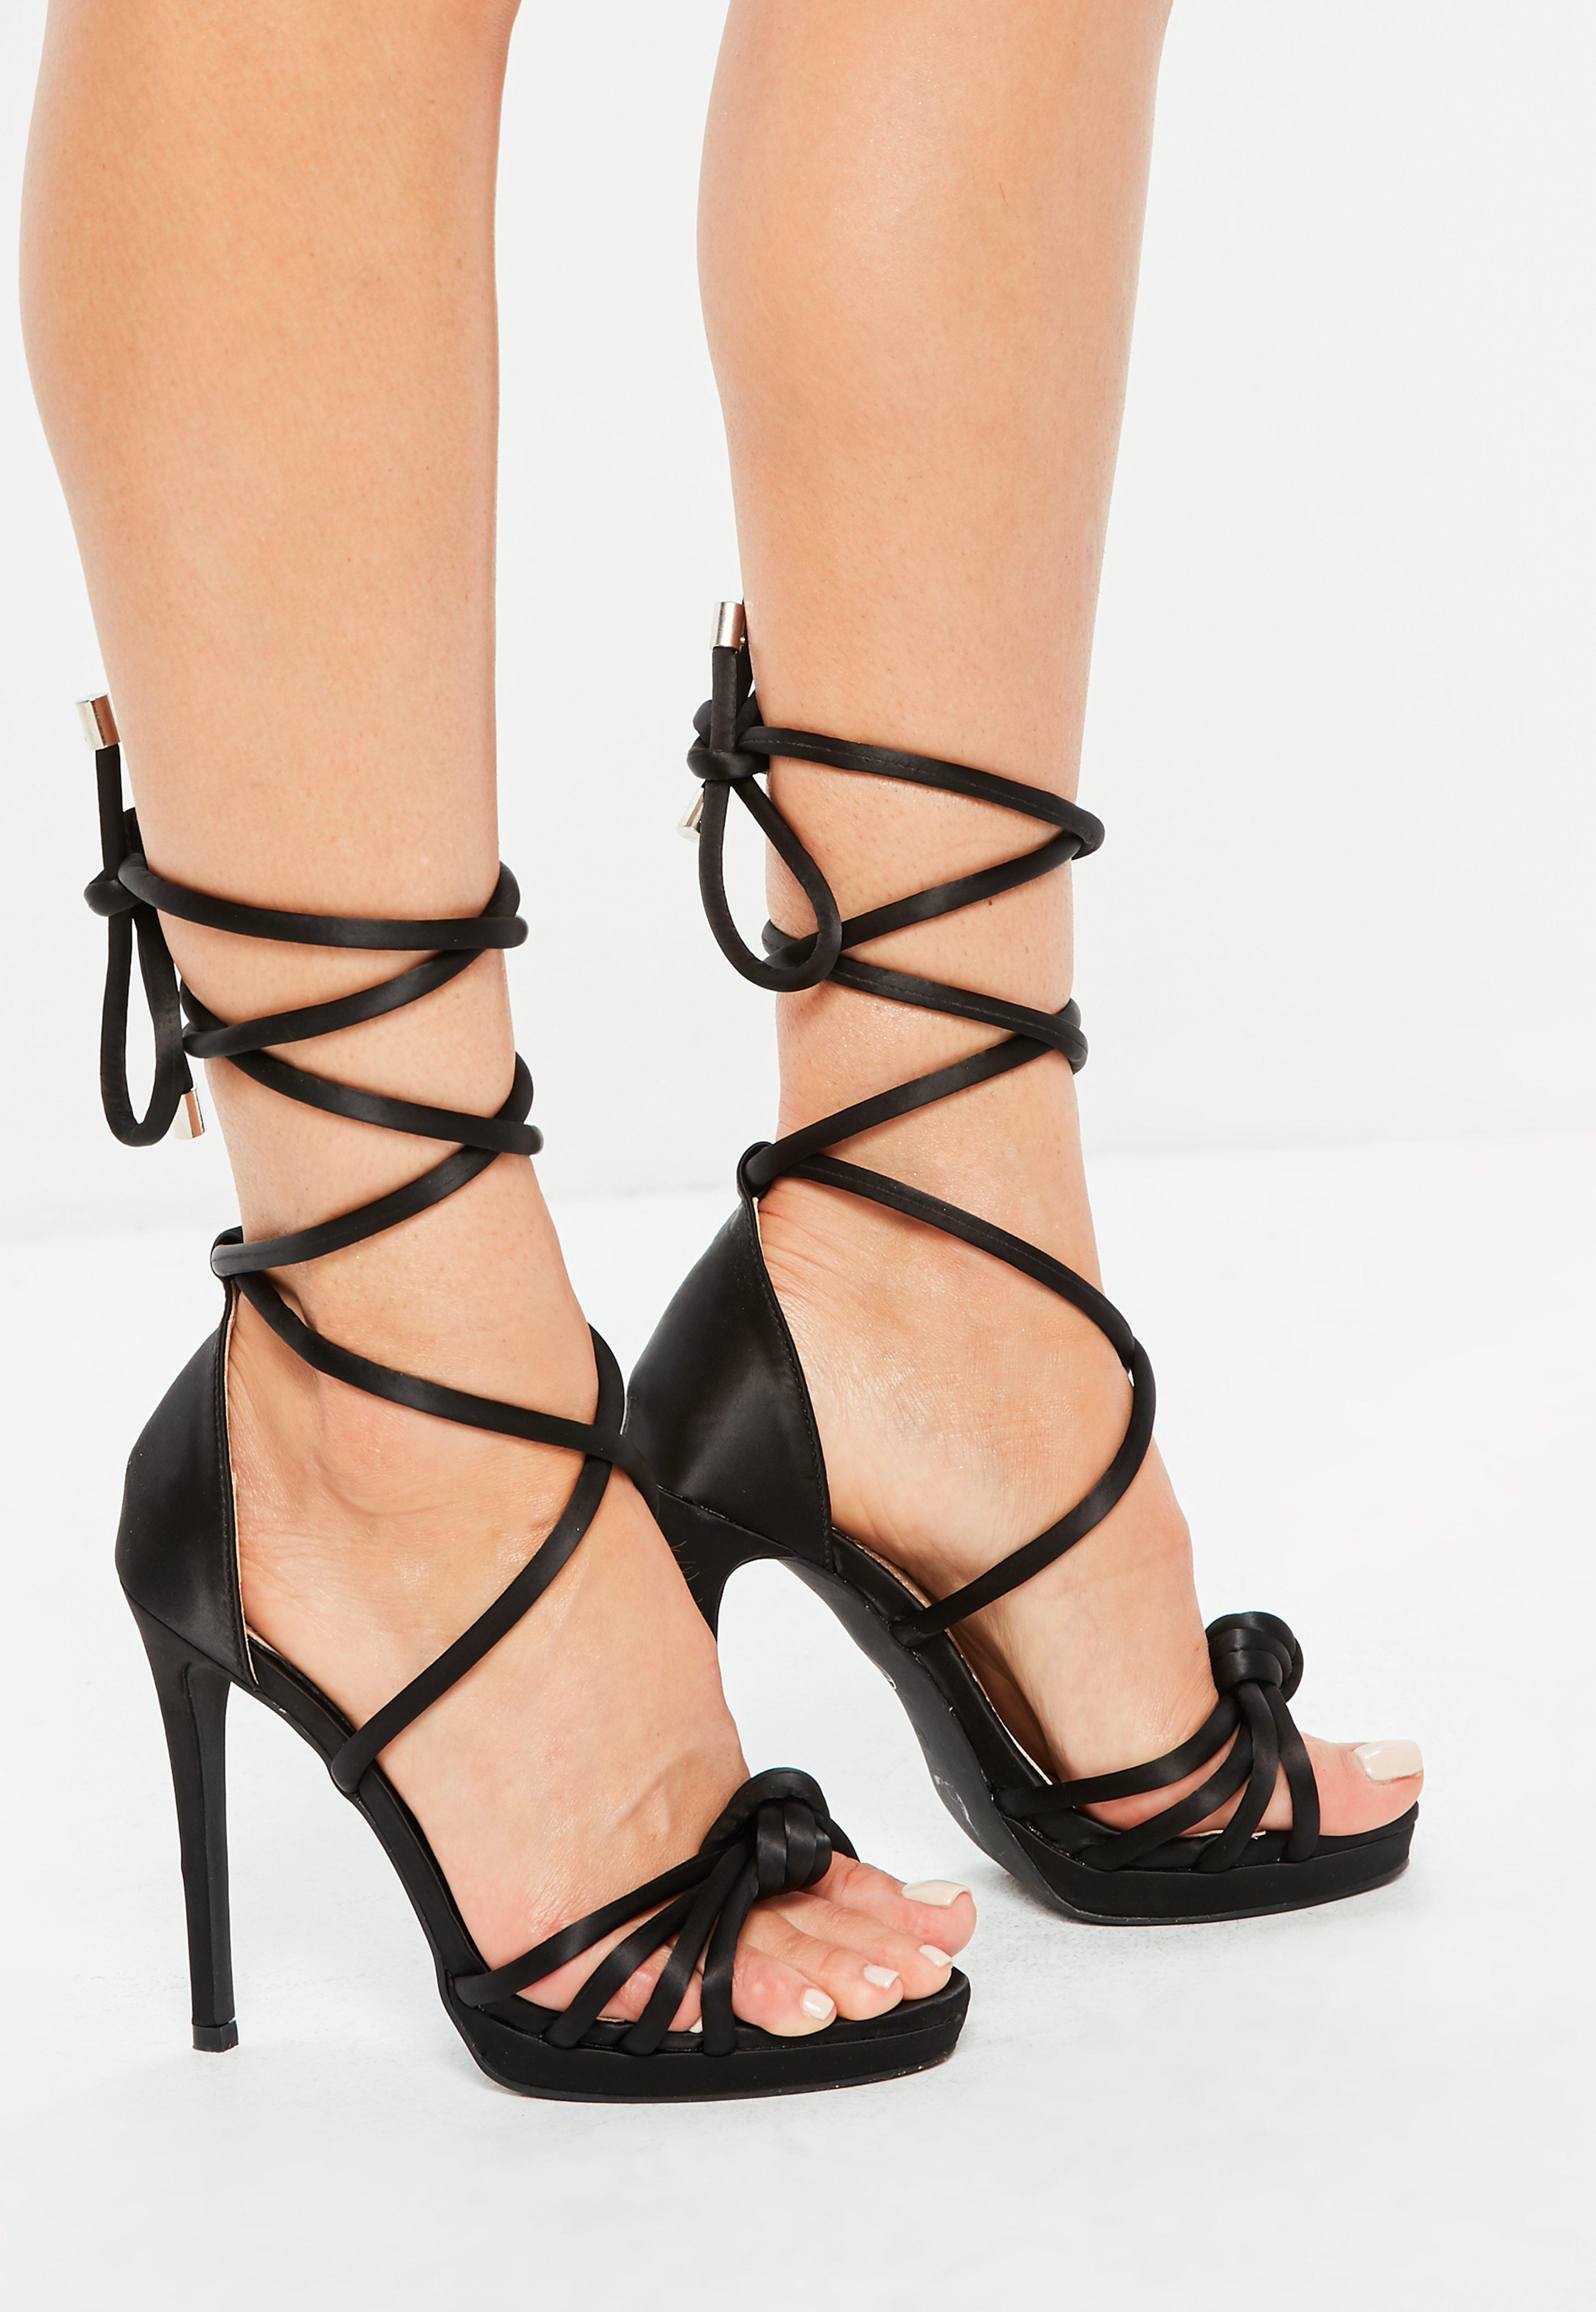 7bca4ed3c484d Missguided - Black Knotted Front Platform Sandals - Lyst. View fullscreen